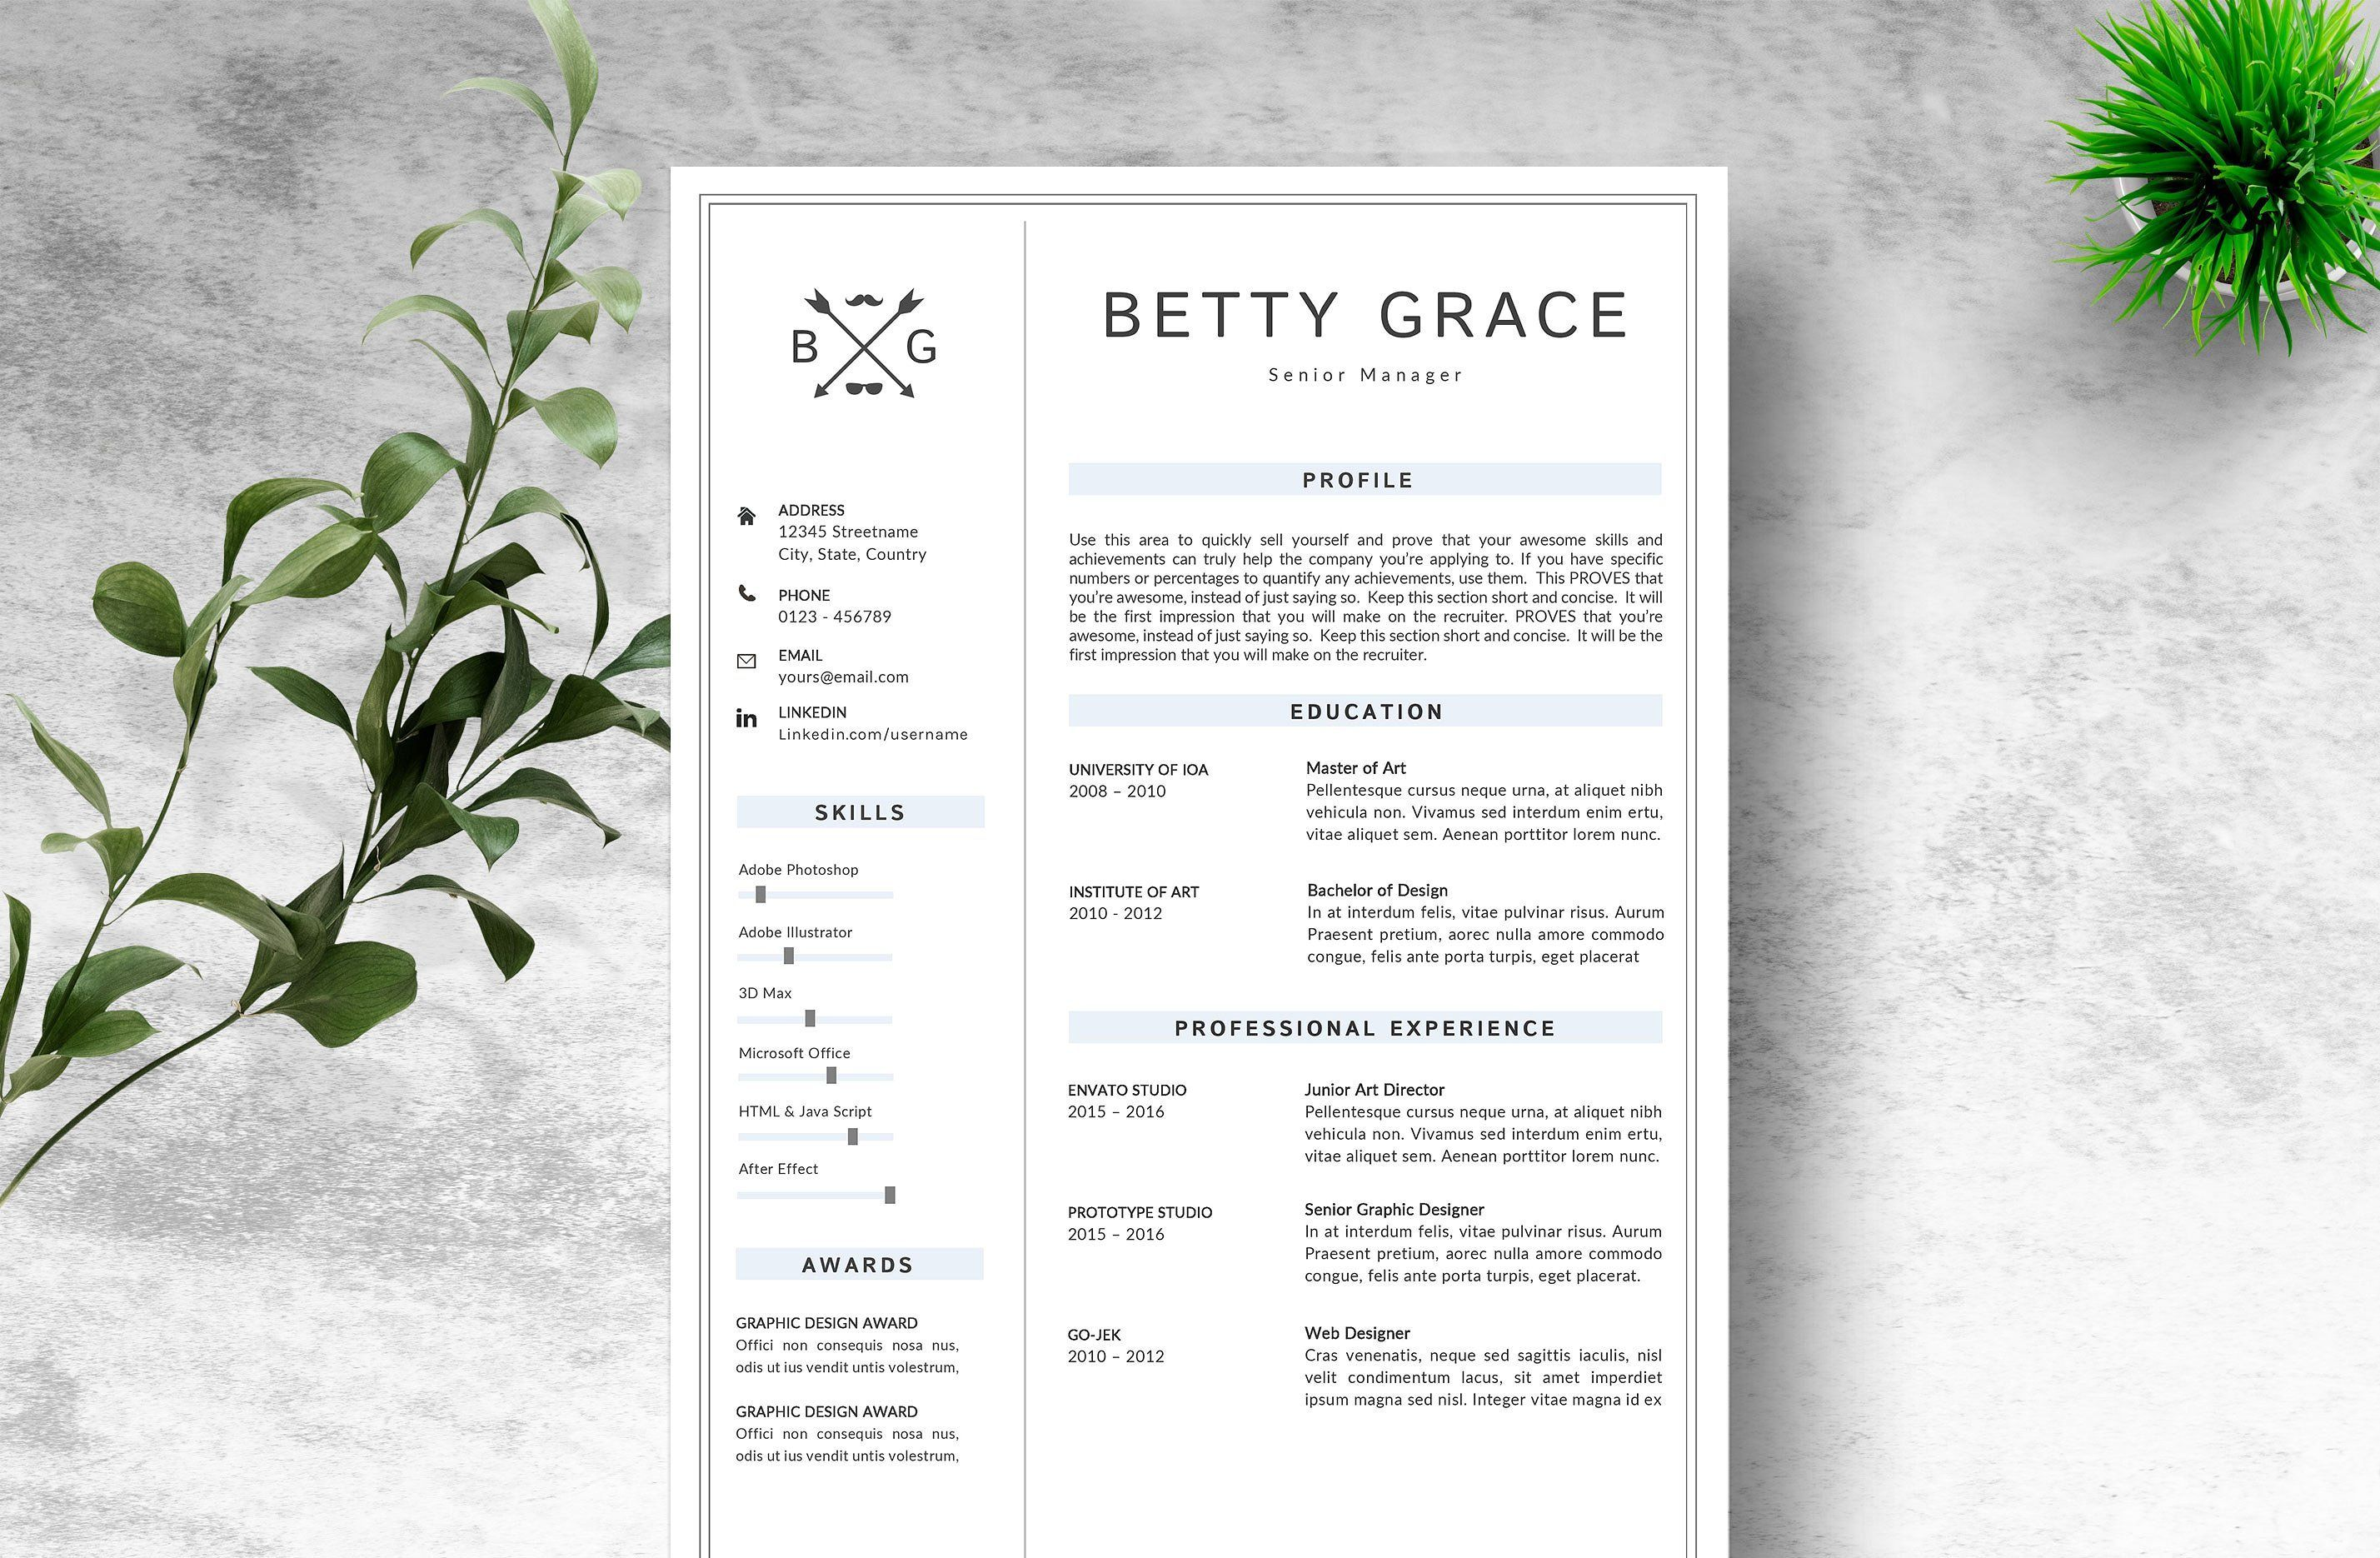 Creative Resume Template By Myresume On Creativemarket Graphicdesign Art Design Illustration Cr Creative Resume Templates Resume Template Creative Resume